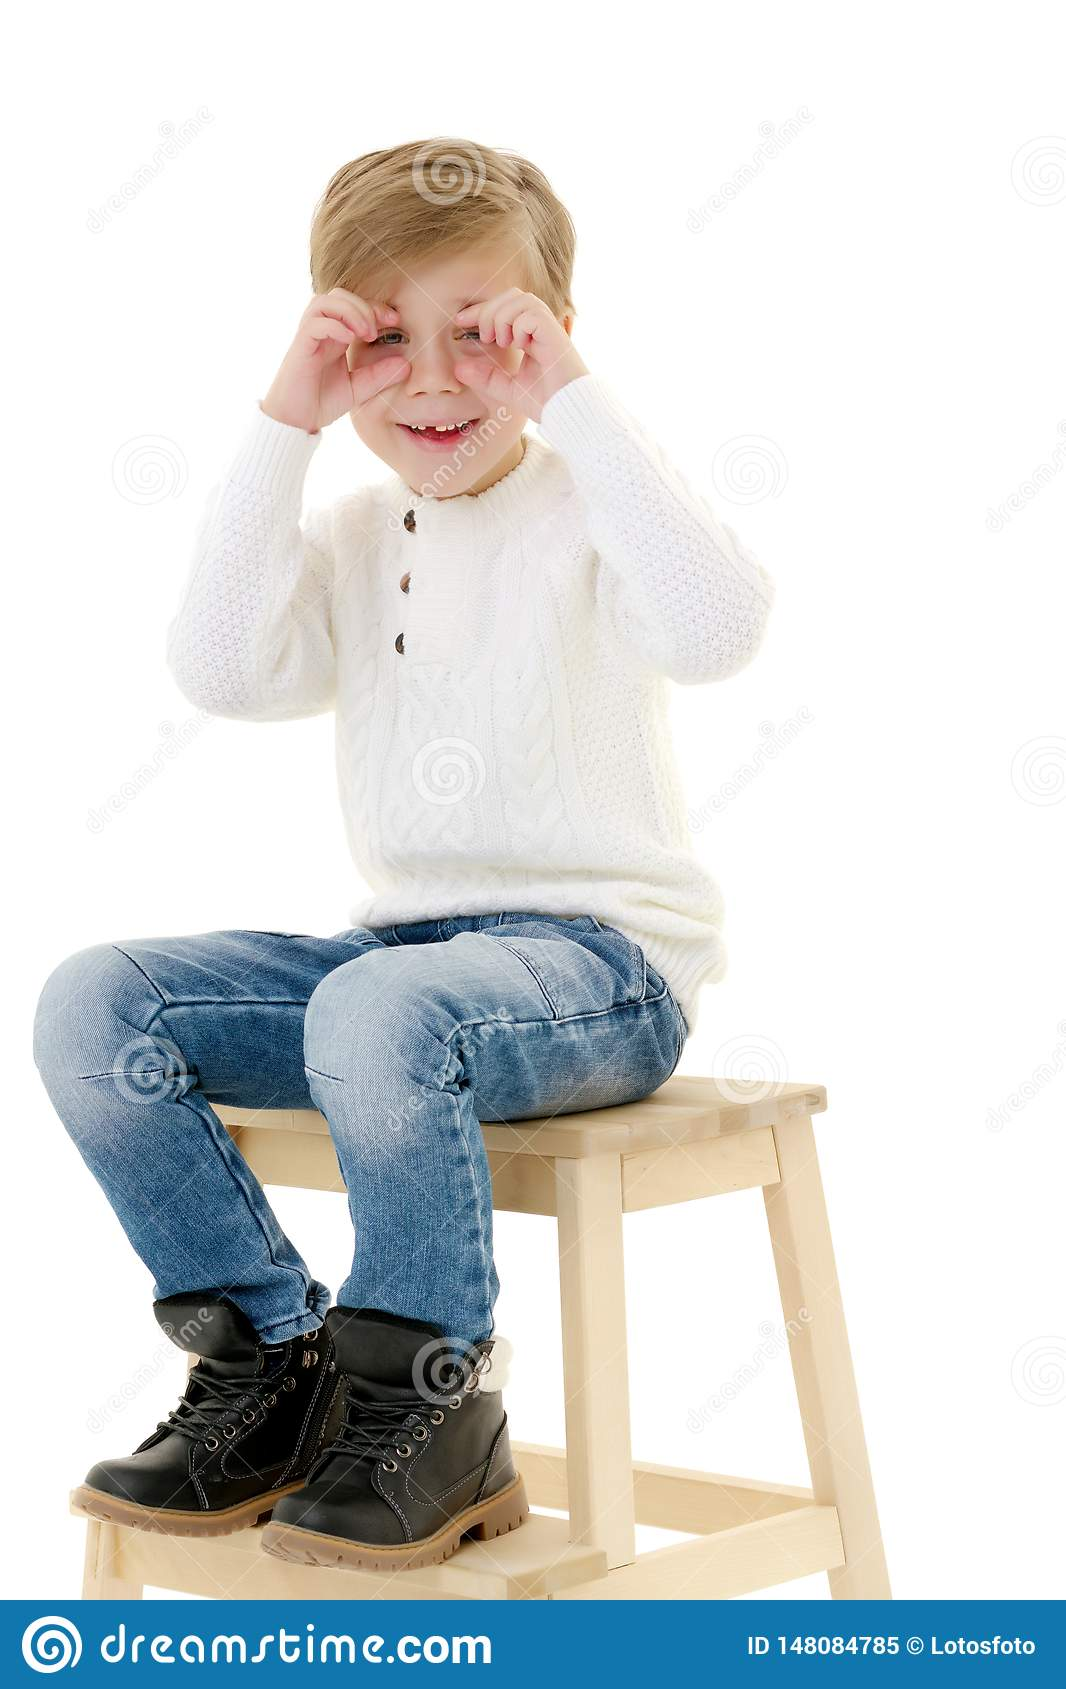 Toddler sitting on potty stock photo. Image of chamber